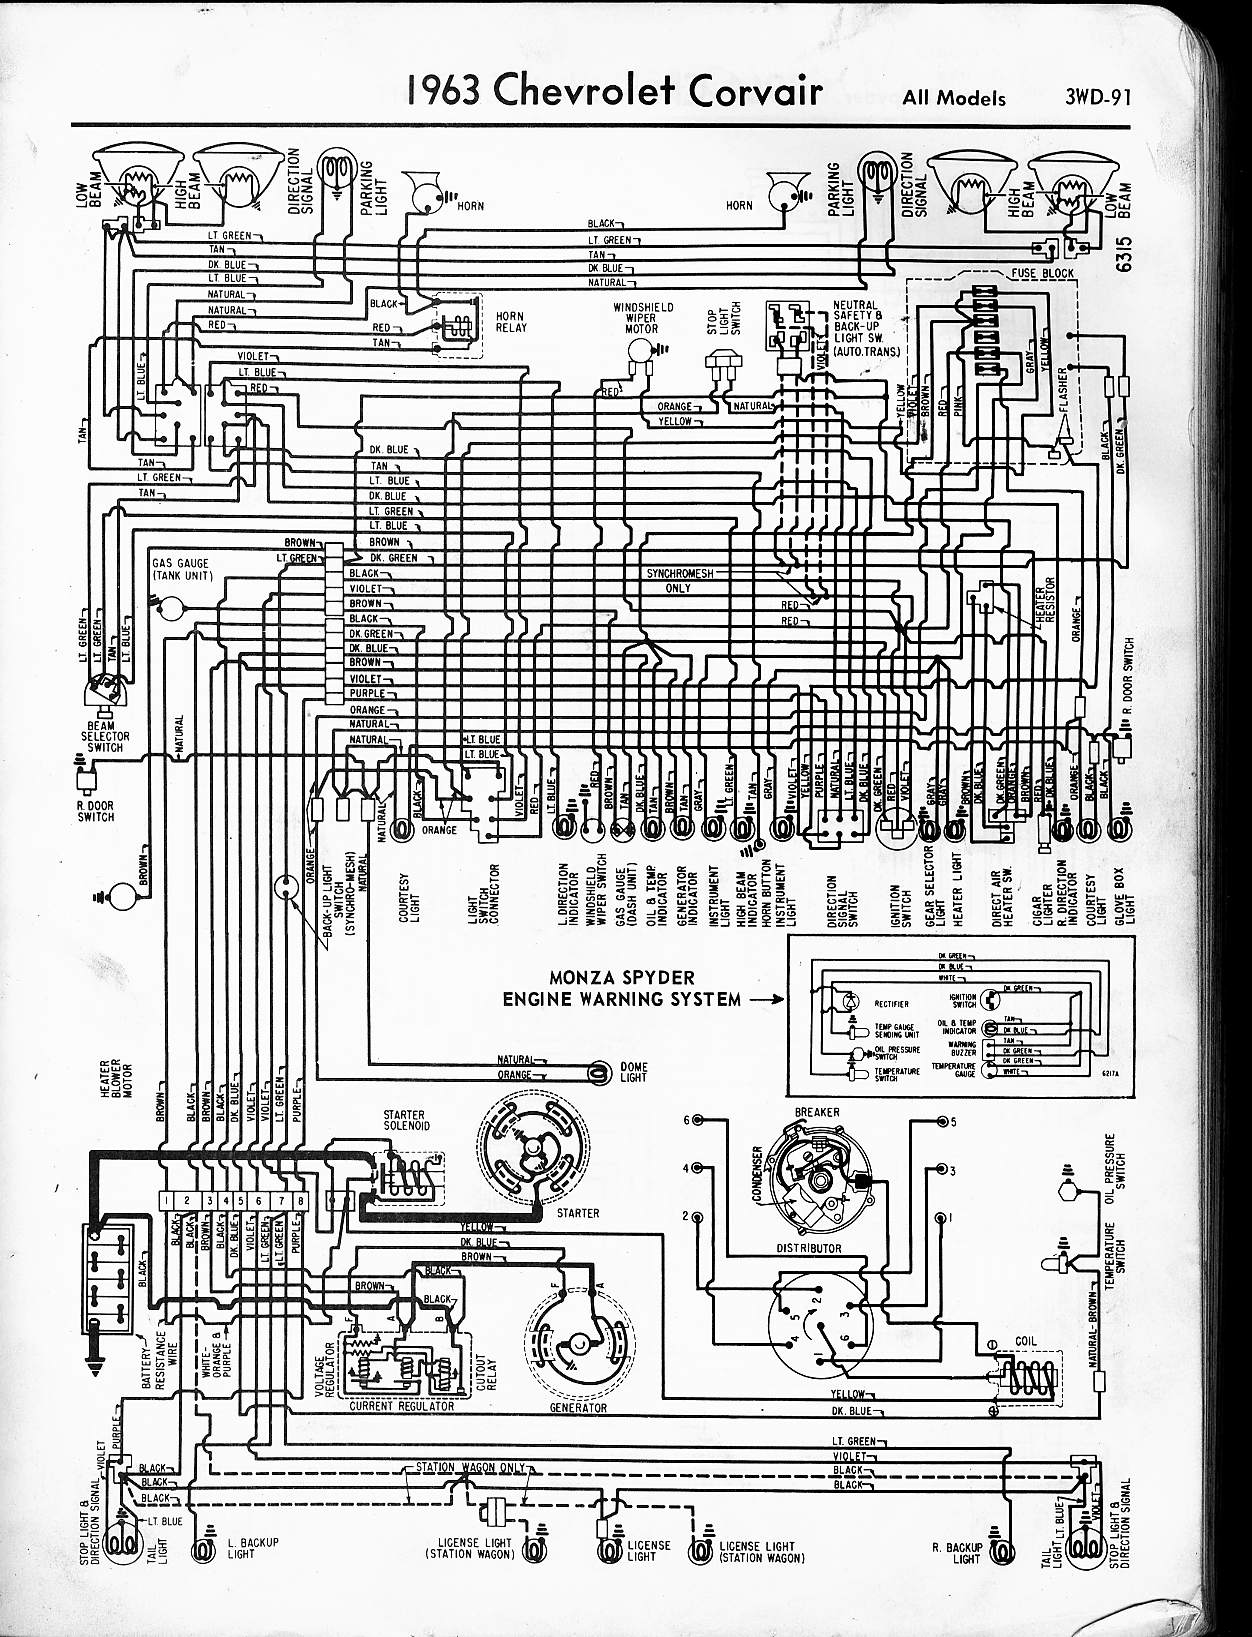 hight resolution of 1965 chevrolet impala wiring diagram wiring diagram third level rh 15 18 16 jacobwinterstein com 1967 impala dash wiring diagram 1967 impala wiring diagram